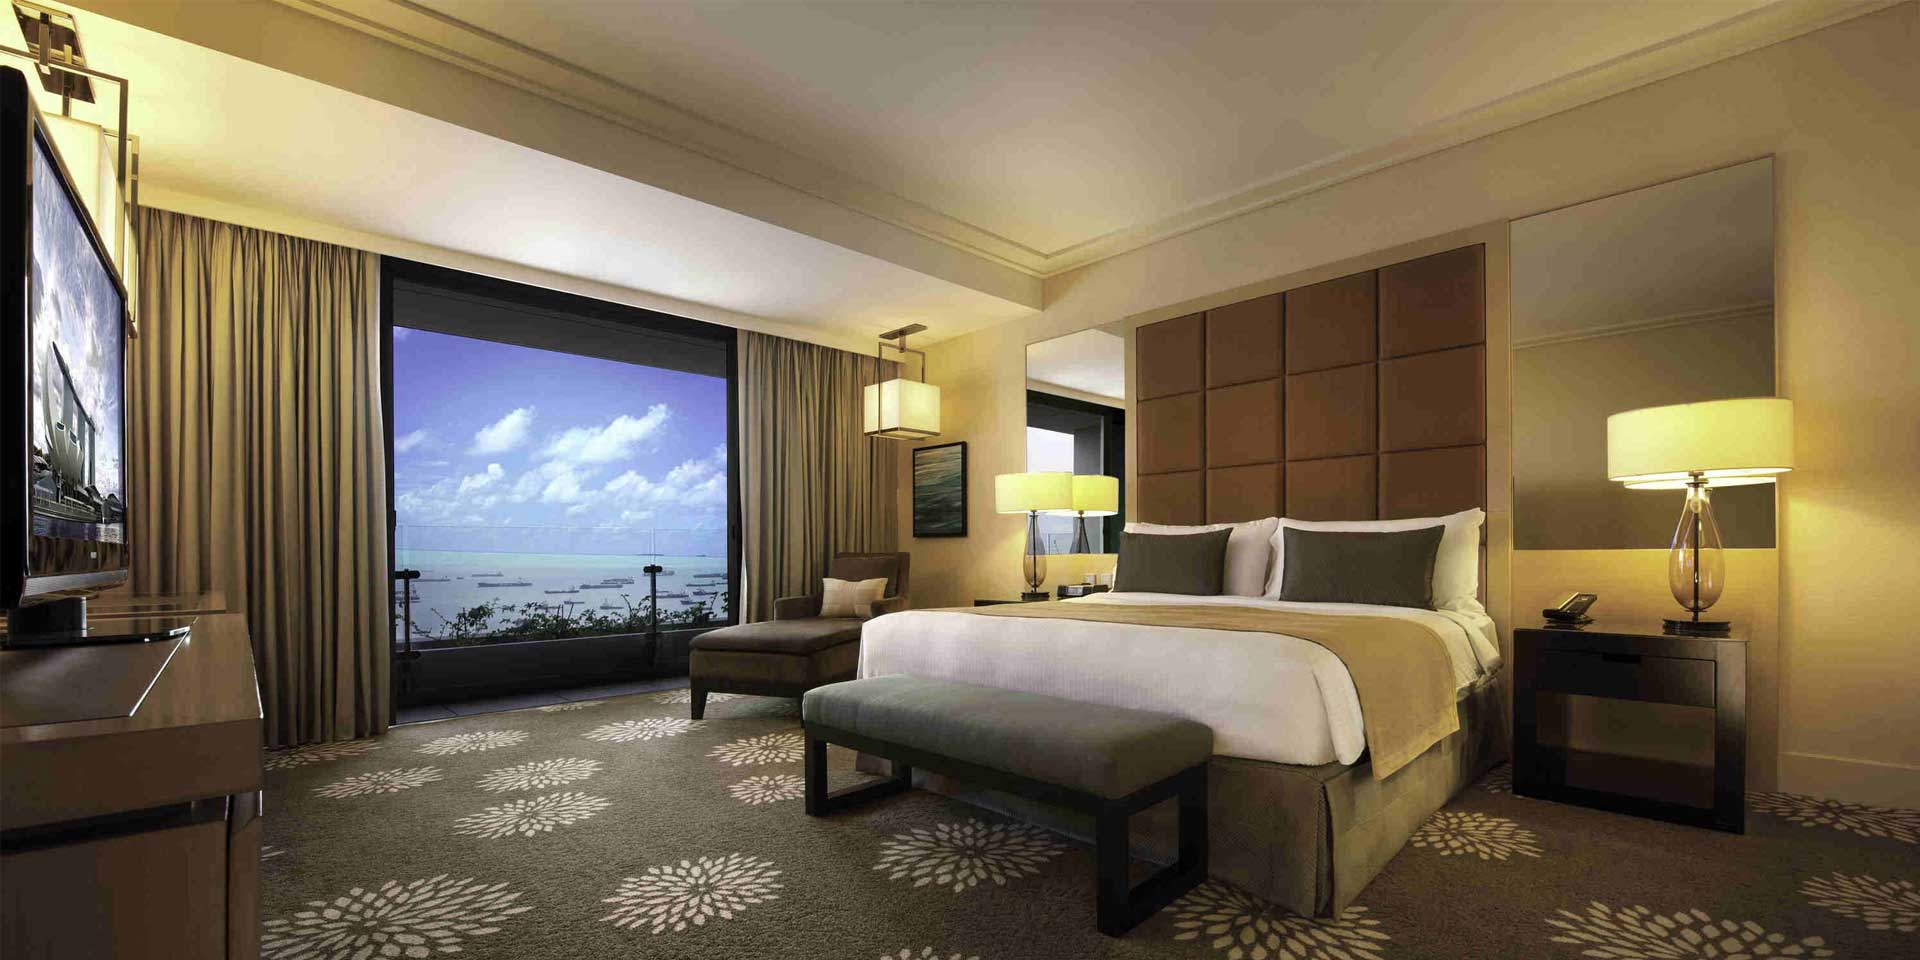 Club Room at Marina Bay Sands with King Bed and Garden View